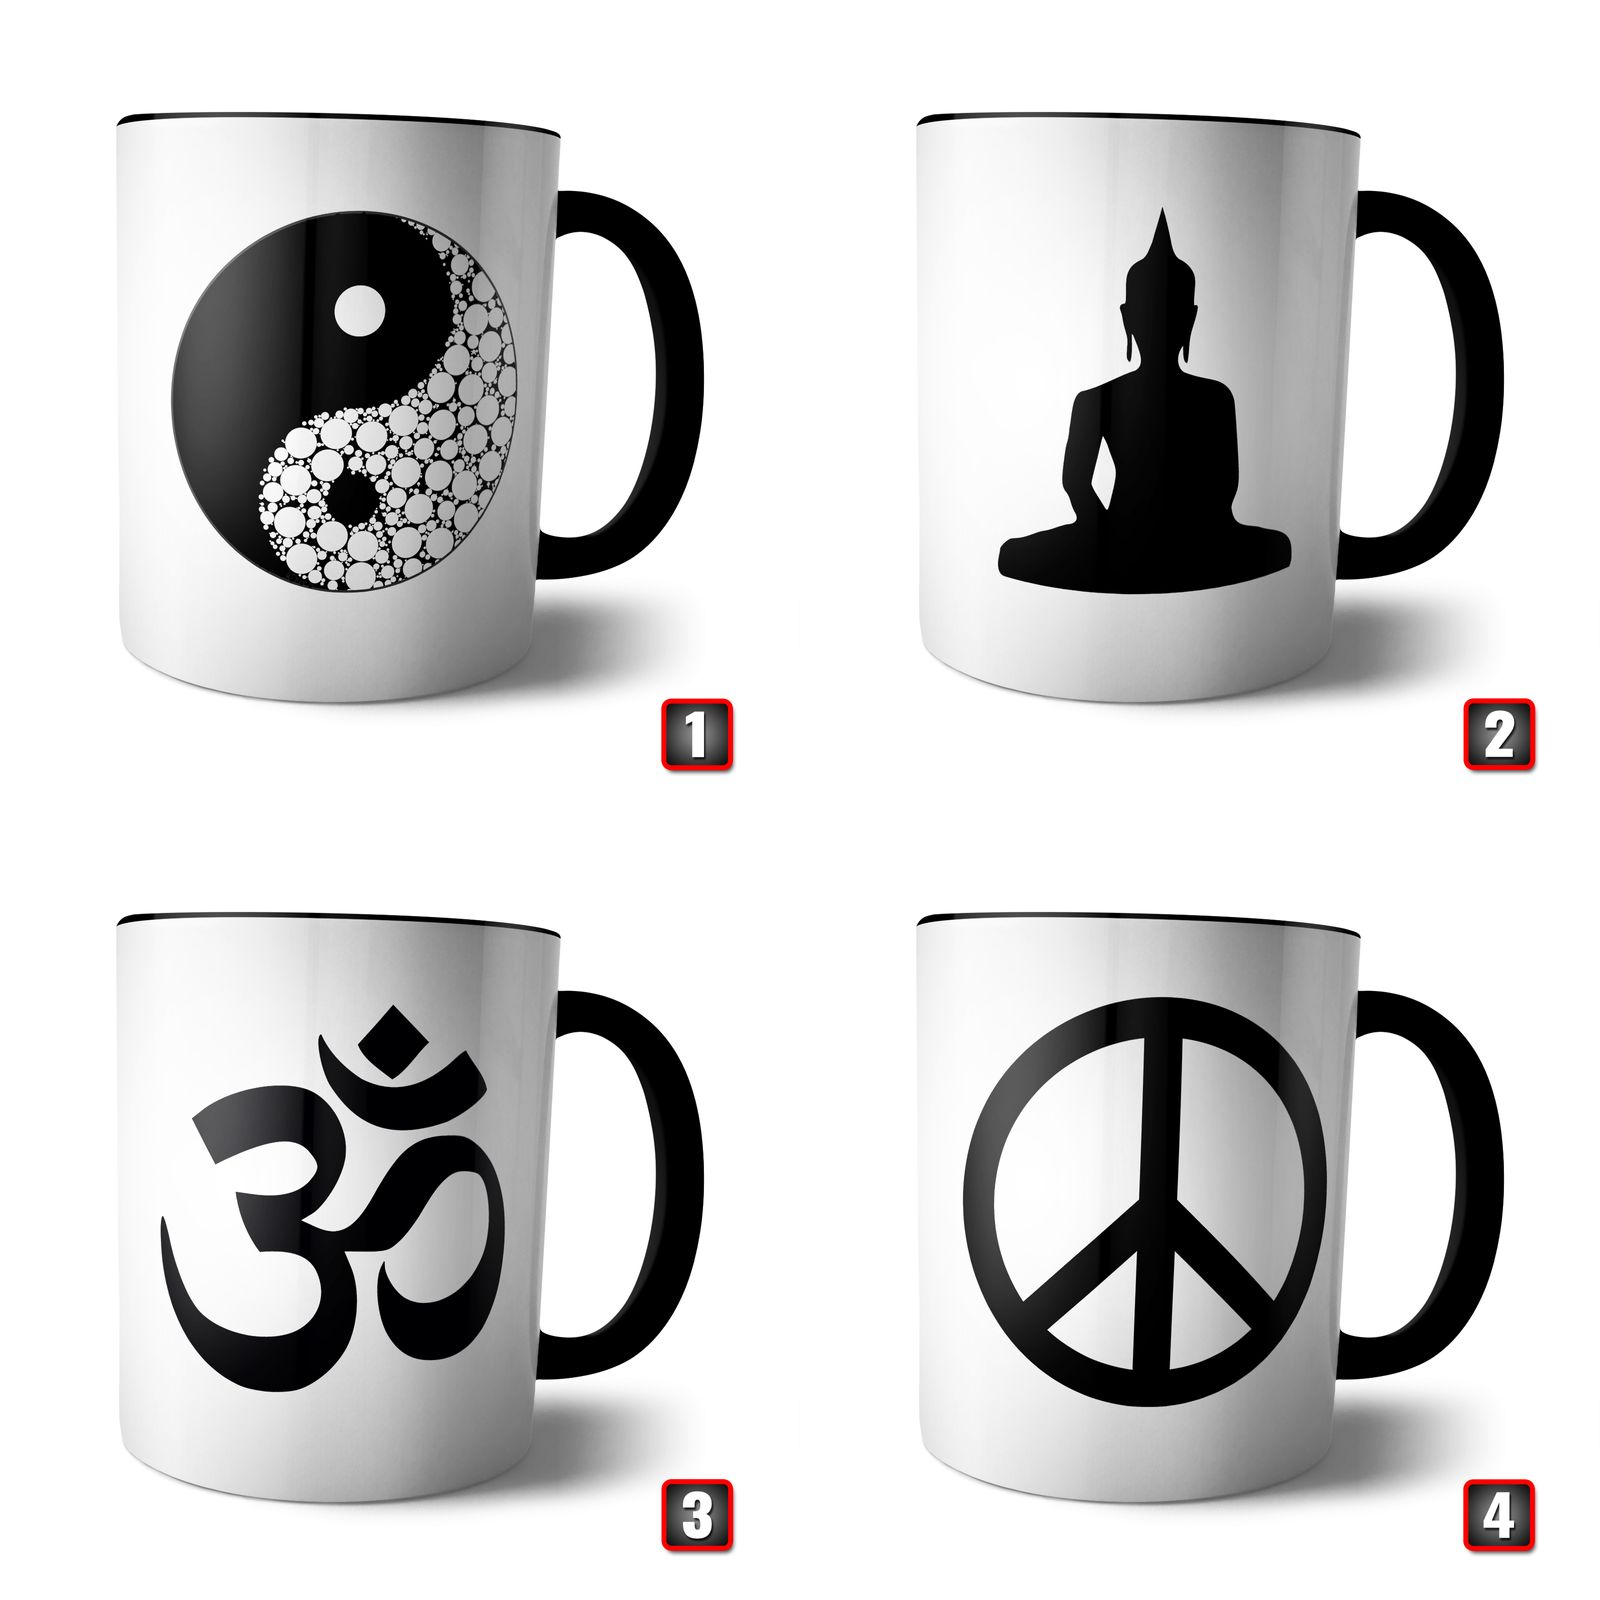 tasse yin yang buddha peace om indien spirituel geschenk lotus indisch parsley ebay. Black Bedroom Furniture Sets. Home Design Ideas